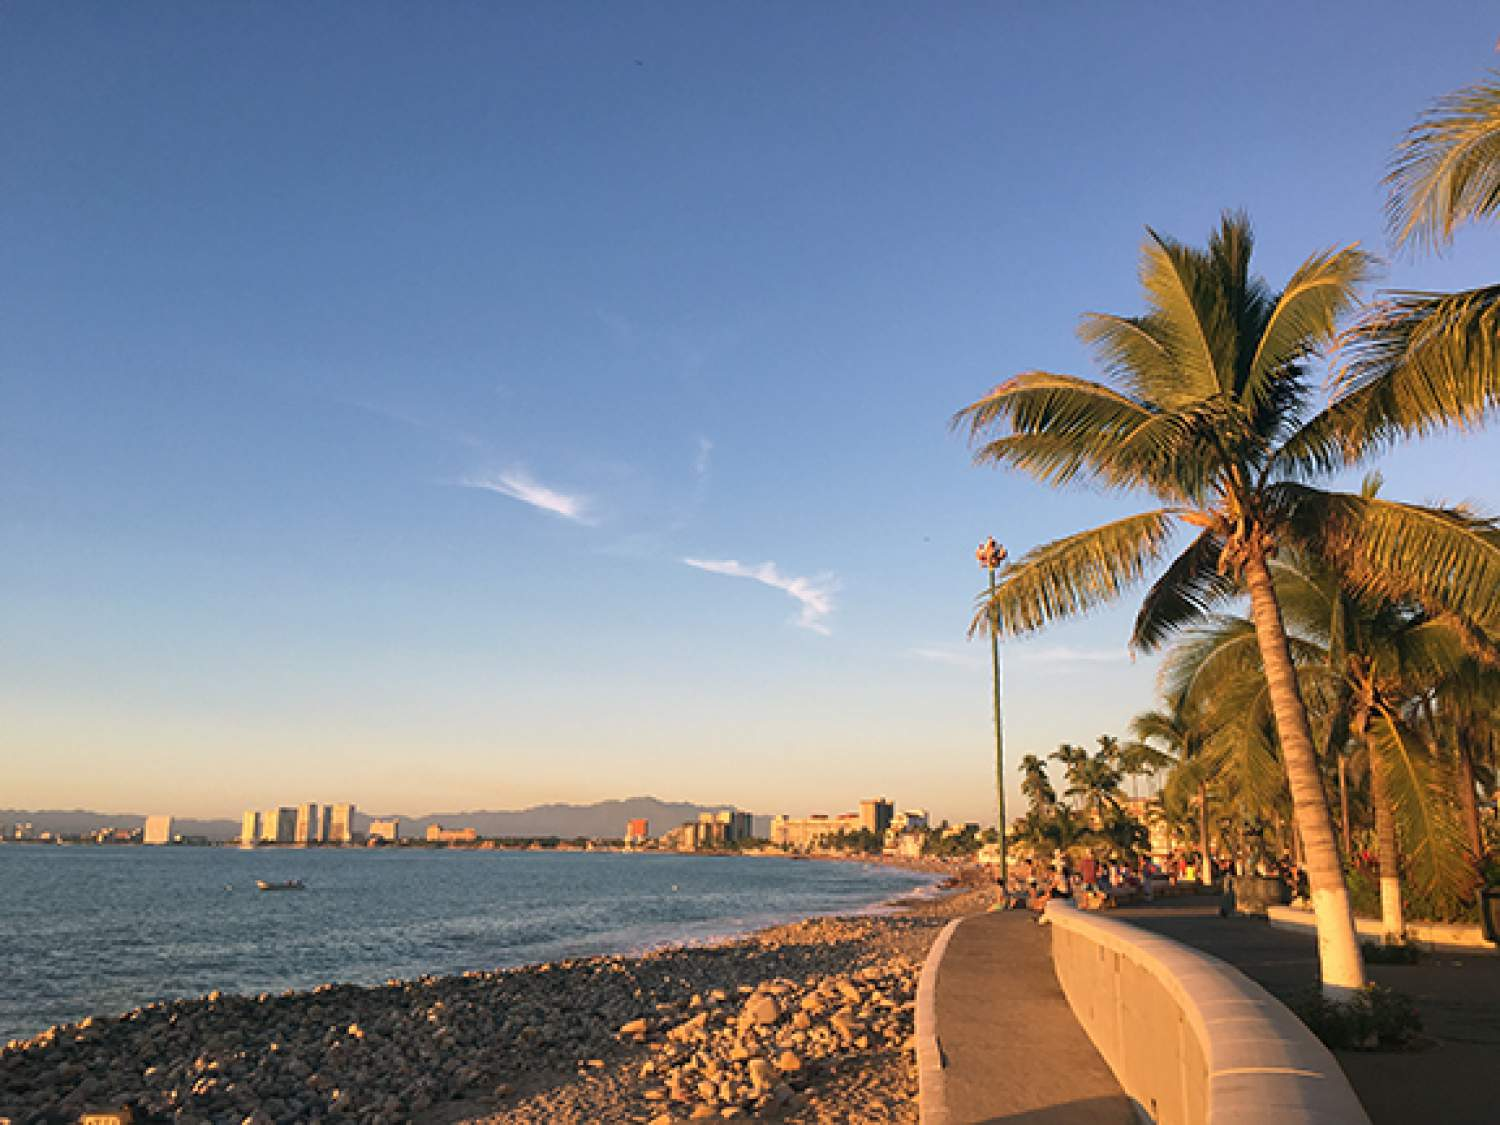 Famous Malecon of Puerto Vallarta